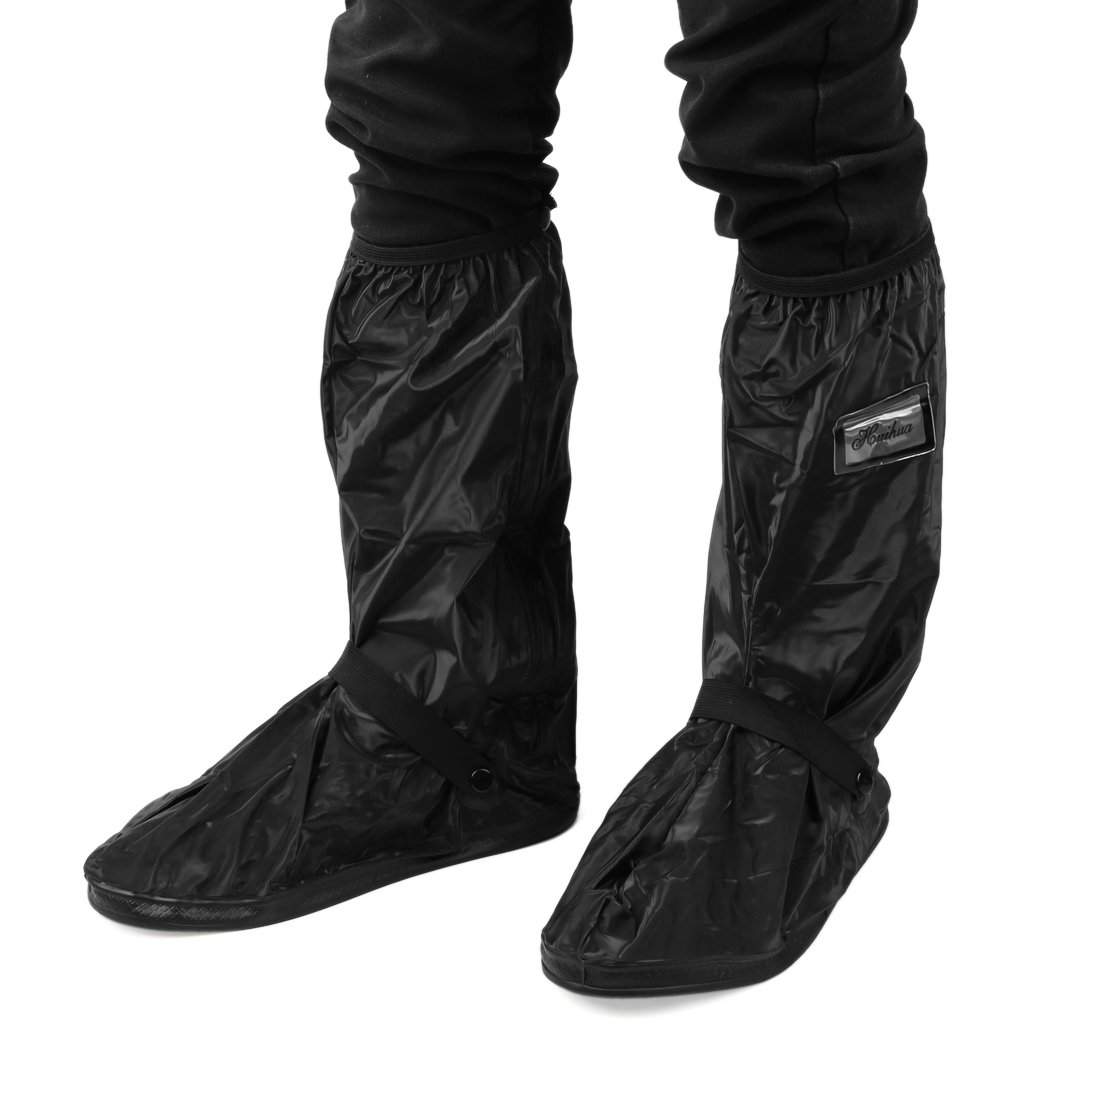 uxcell 1Pair Black Motorcycle Anti-Slip Waterproof Adjustable Rain Shoes Boot Cover L